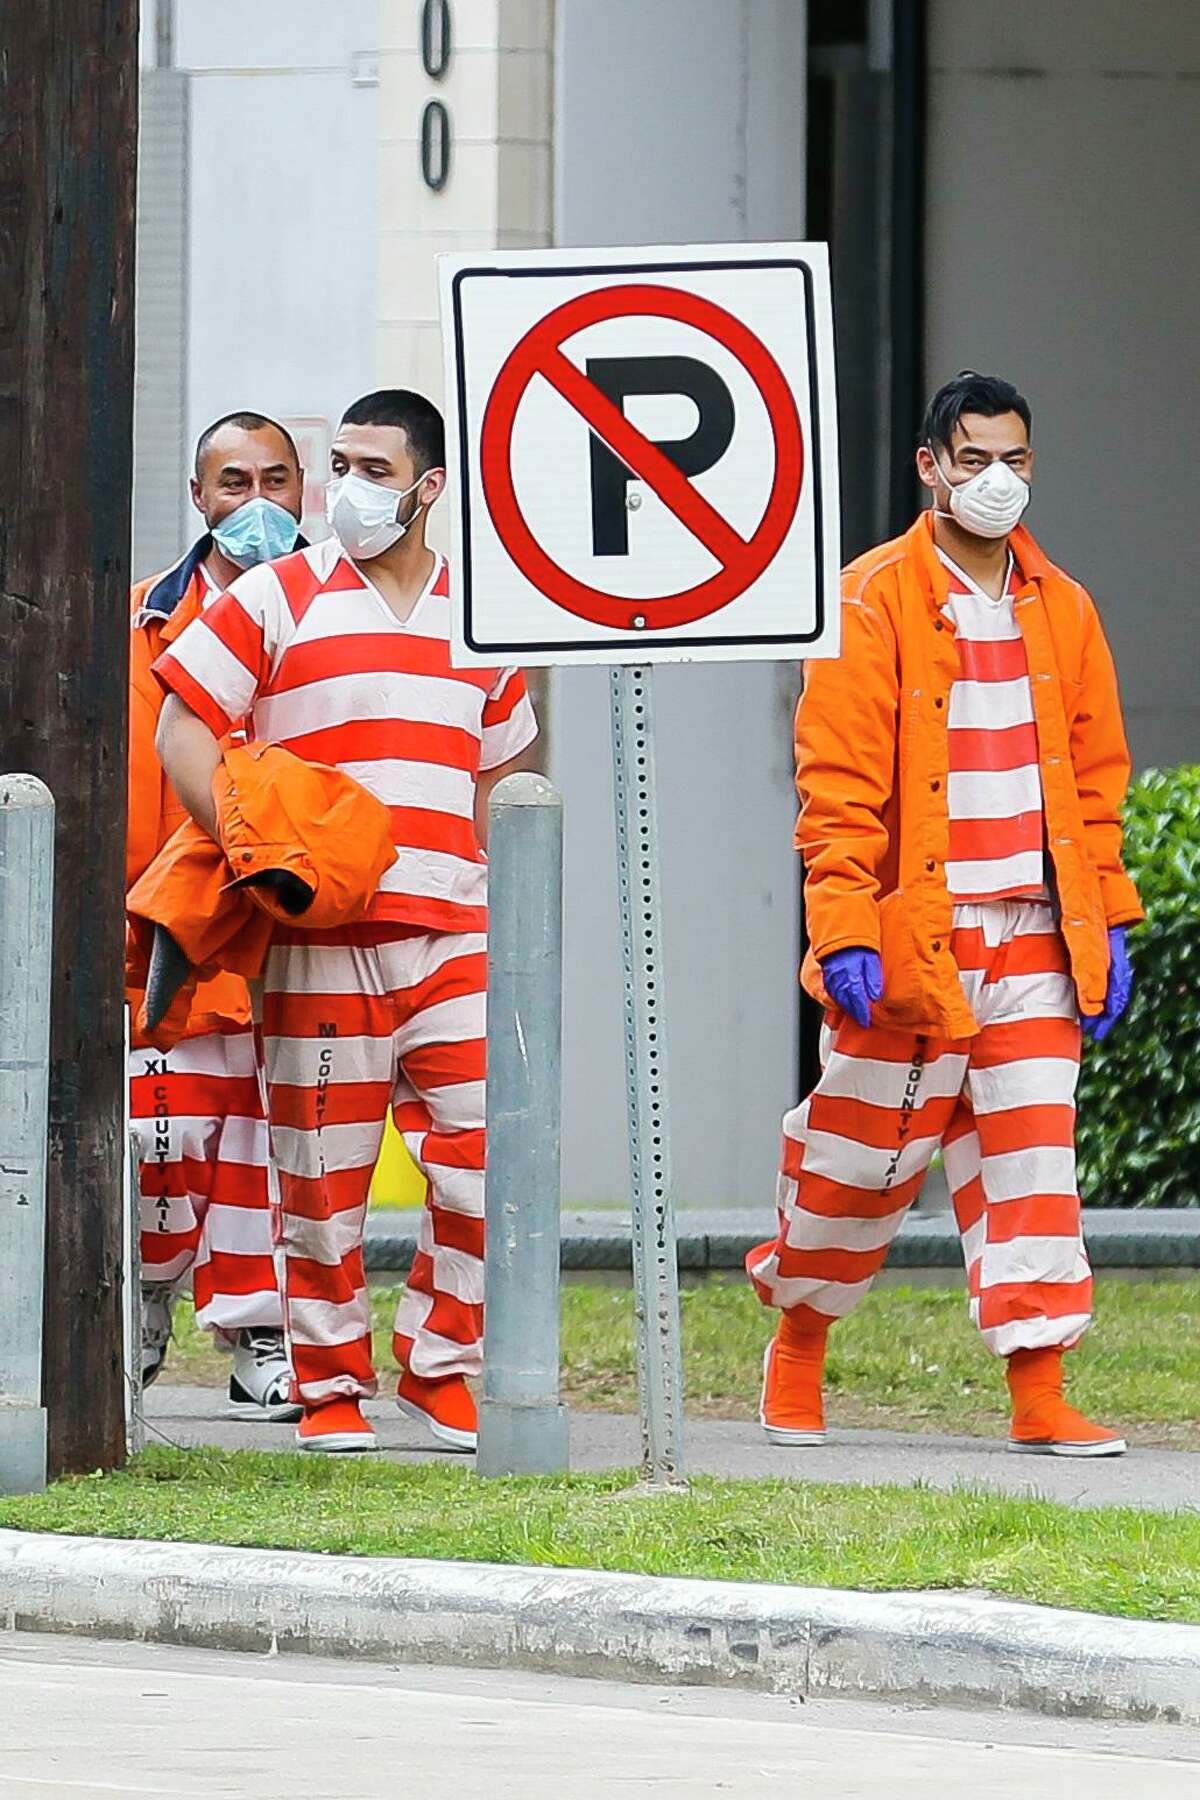 Harris County Jail inmates wear masks as they walk between buildings in the area of the jail, Friday, April 3, 2020, in downtown Houston.